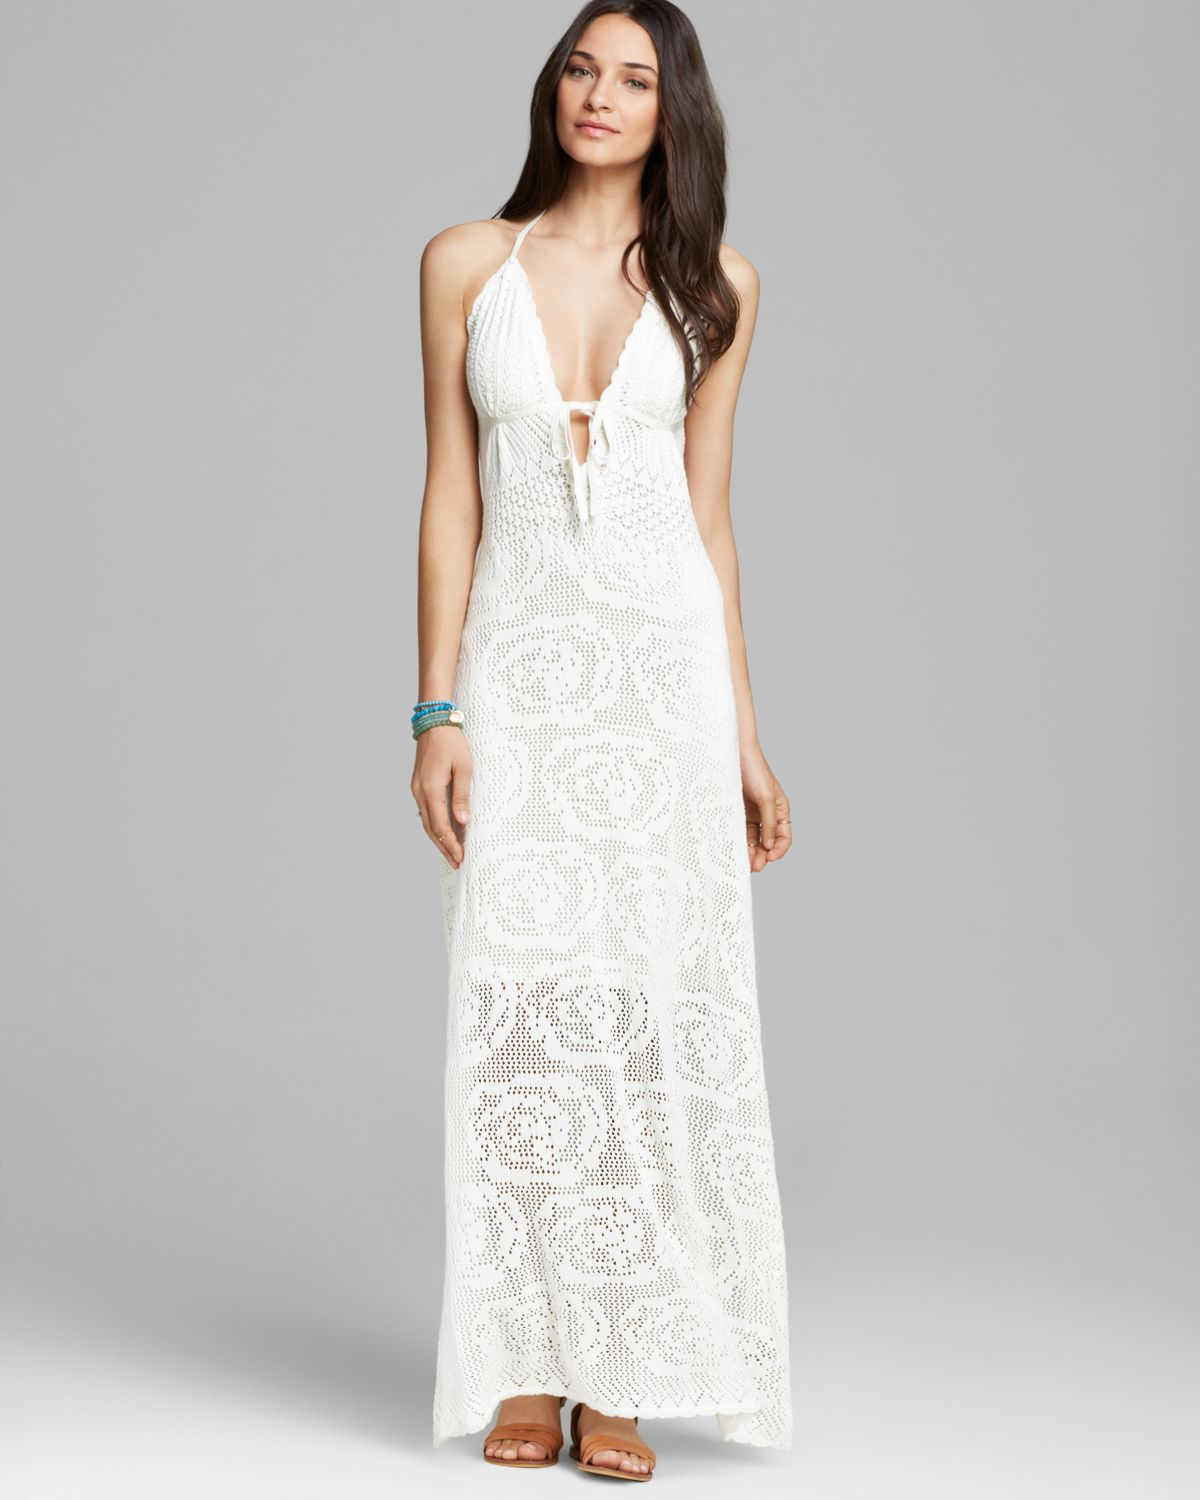 Guess Maxi Dress Lace Crochet in White (True White) Lyst